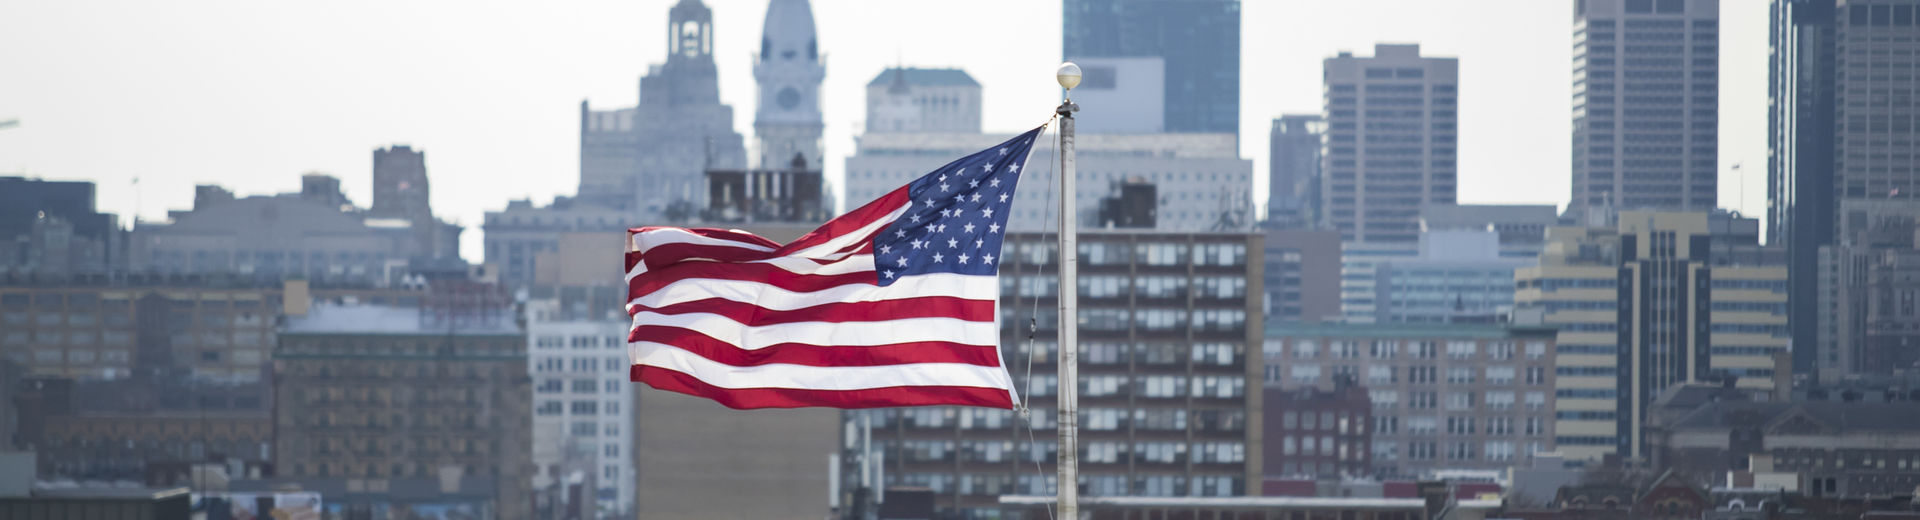 The American flag waves above the Philadelphia city skyline.